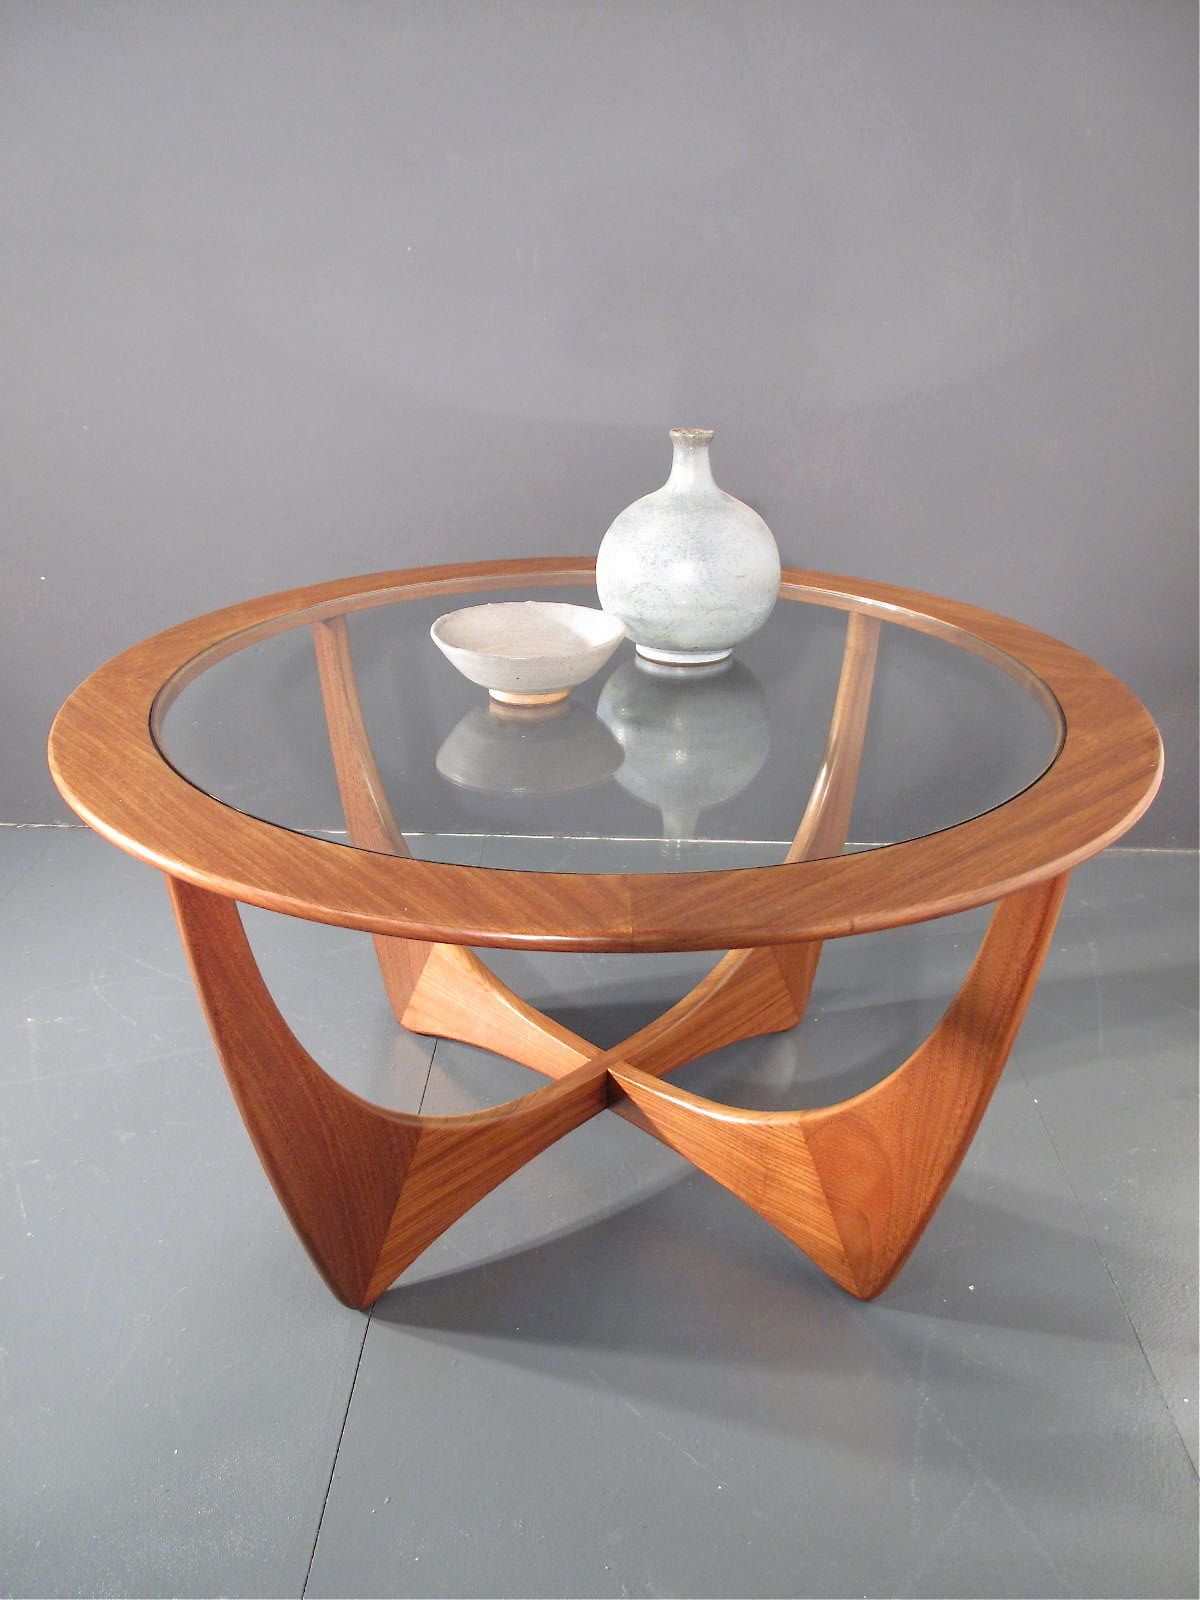 vintage G PLAN ASTRO TEAK & GLASS COFFEE TABLE .DANISH. Retro 60s 70s.eames | eBay